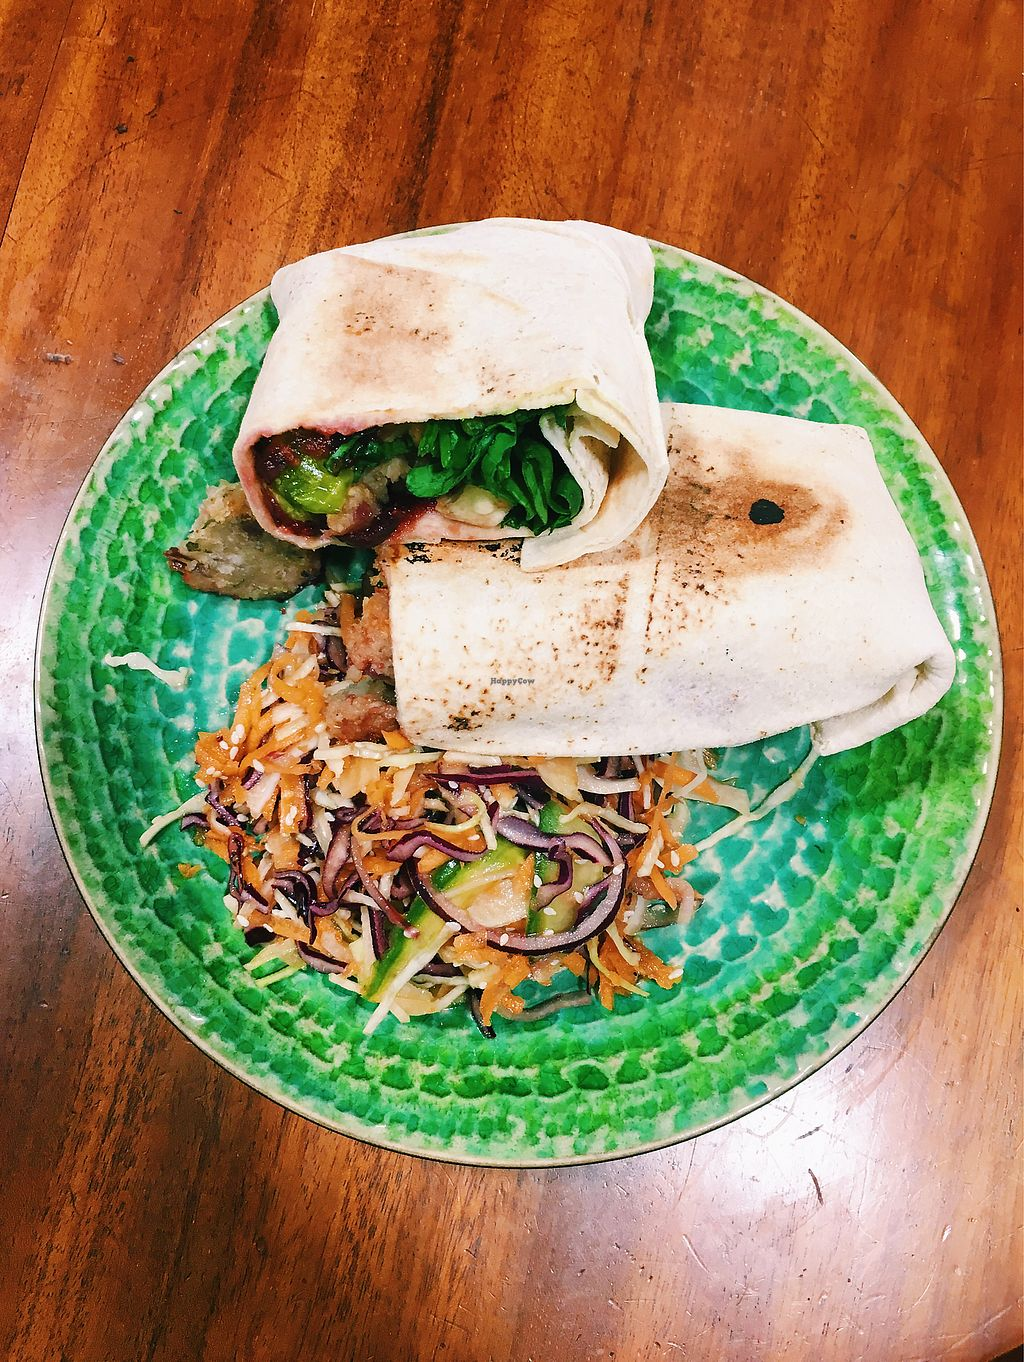 "Photo of The Herbivore Kitchen  by <a href=""/members/profile/malinfrisell"">malinfrisell</a> <br/>Wrap with a sesame salad  <br/> November 19, 2017  - <a href='/contact/abuse/image/97309/327096'>Report</a>"